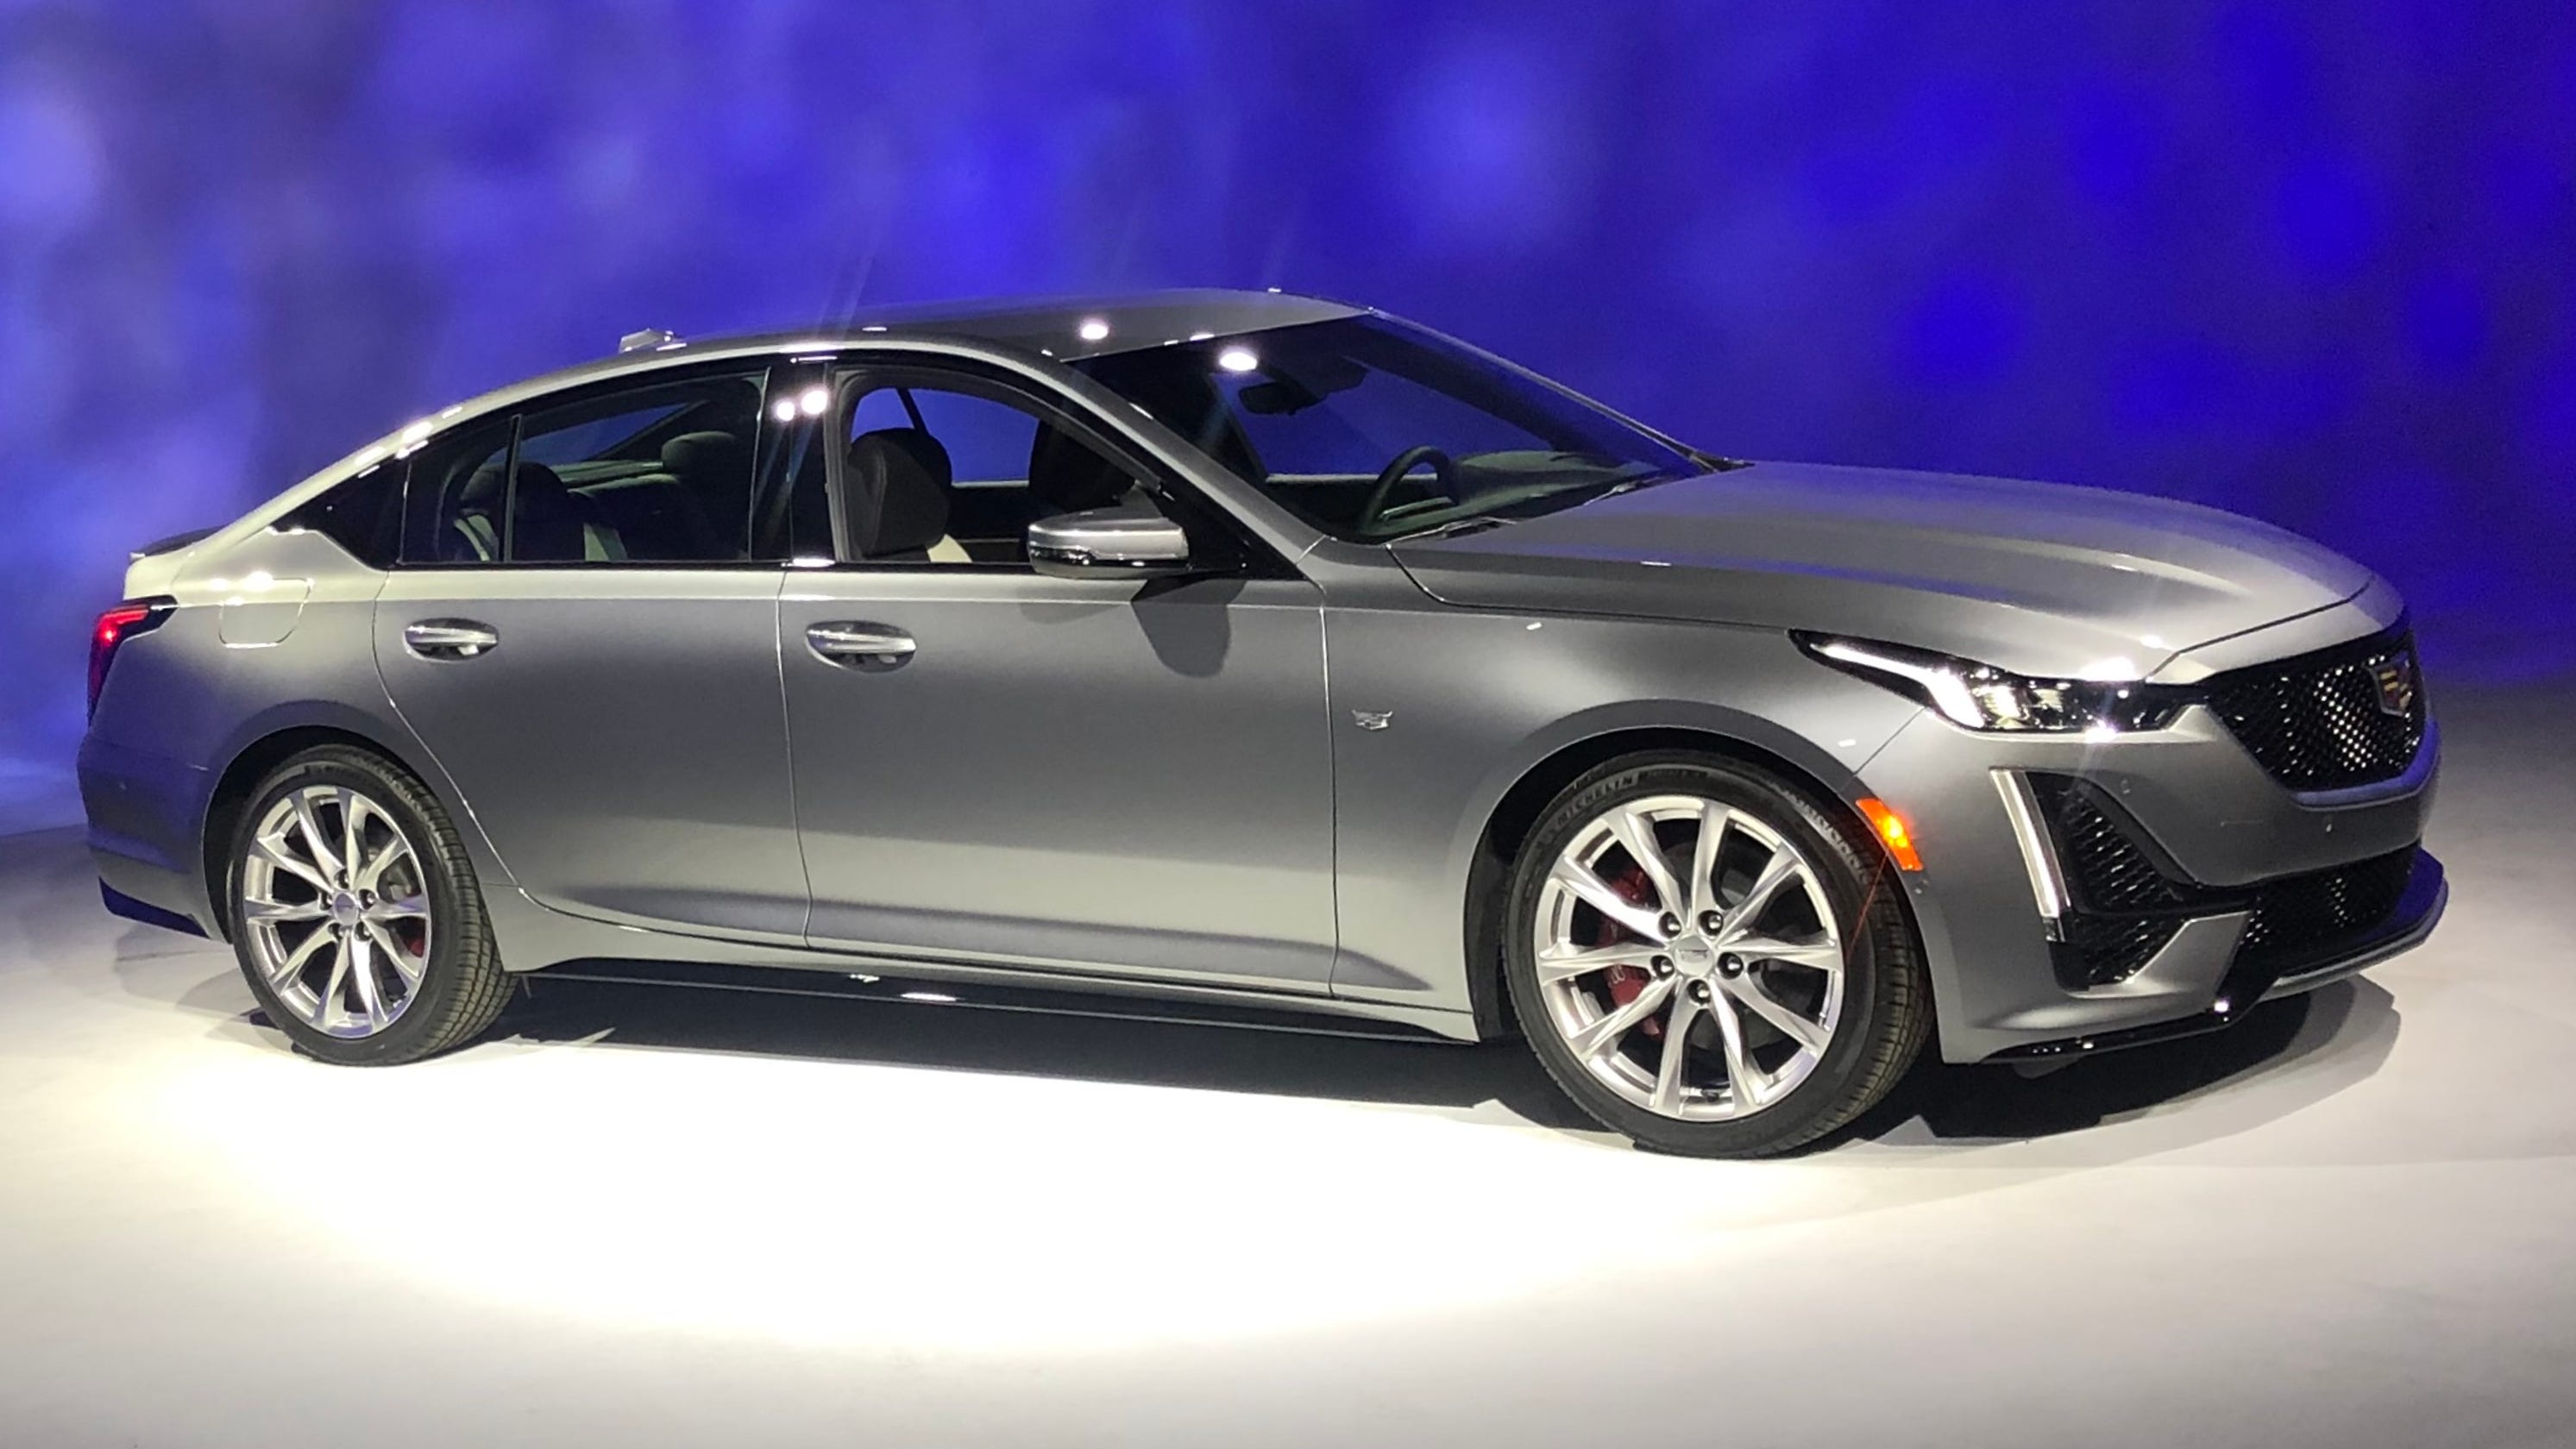 2020 Cadillac Ct5 Sedan Revealed At New York Auto Show